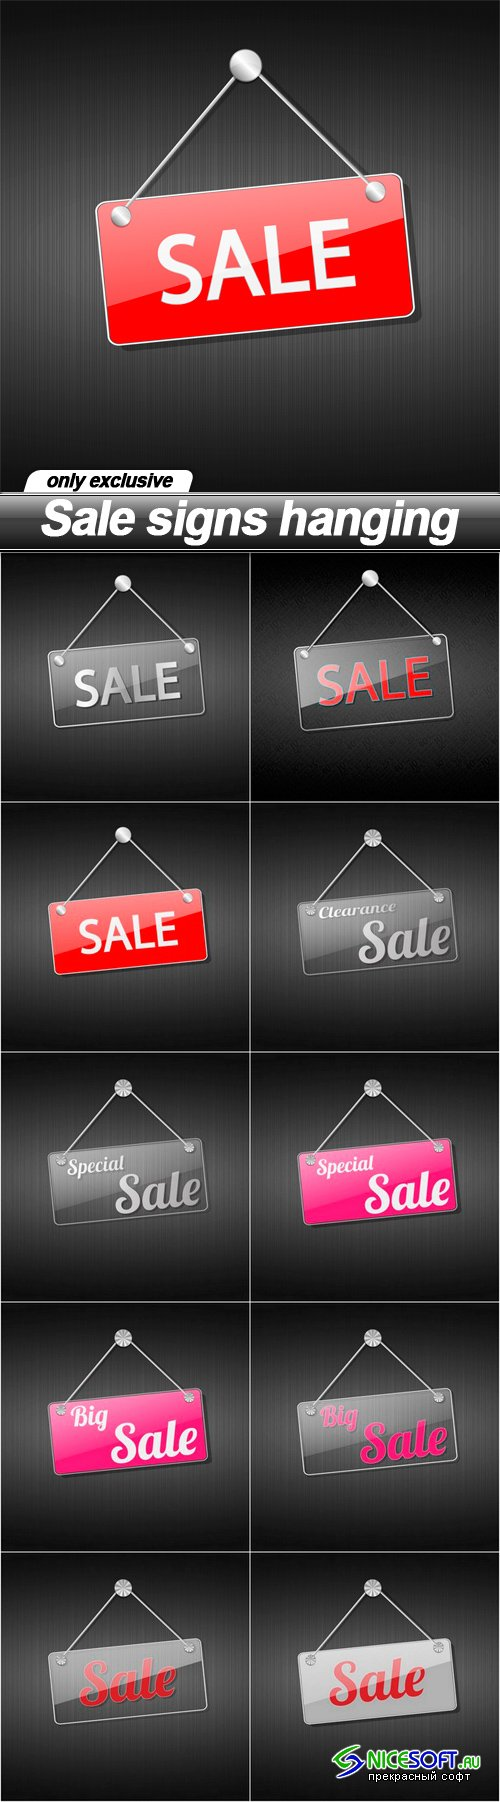 Sale signs hanging - 10 EPS